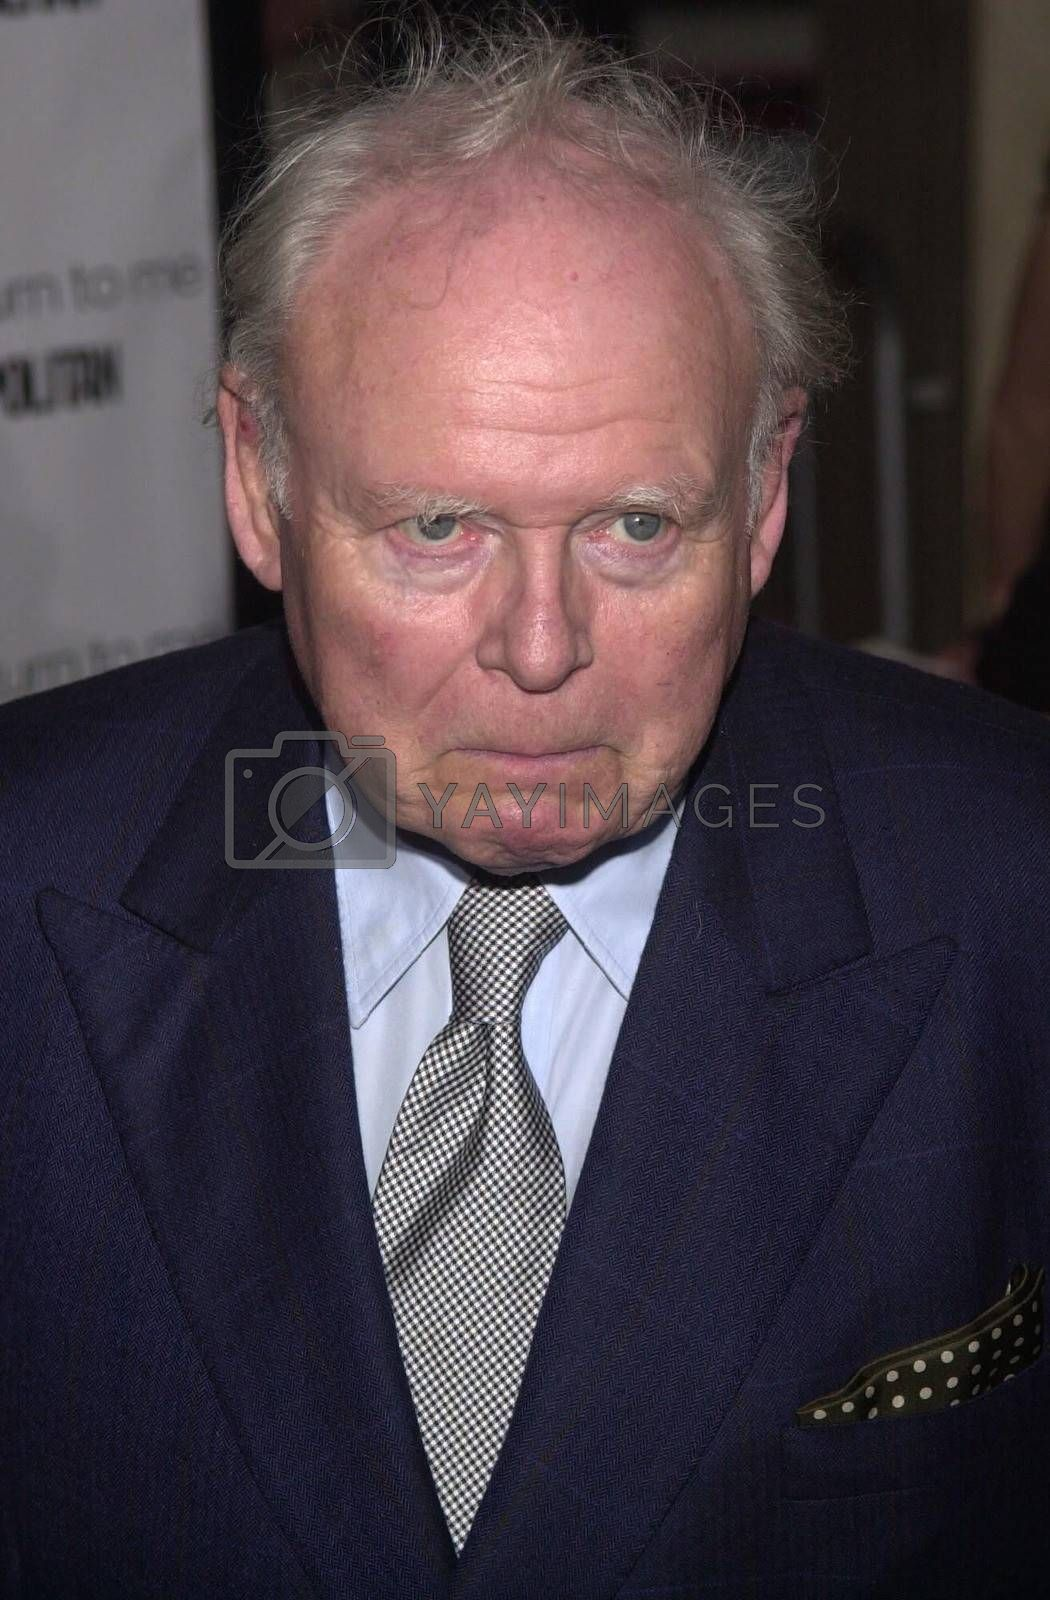 """Carroll O'Connor at the premiere of MGM's """"RETURN TO ME"""" in Century City, 04-03-00"""